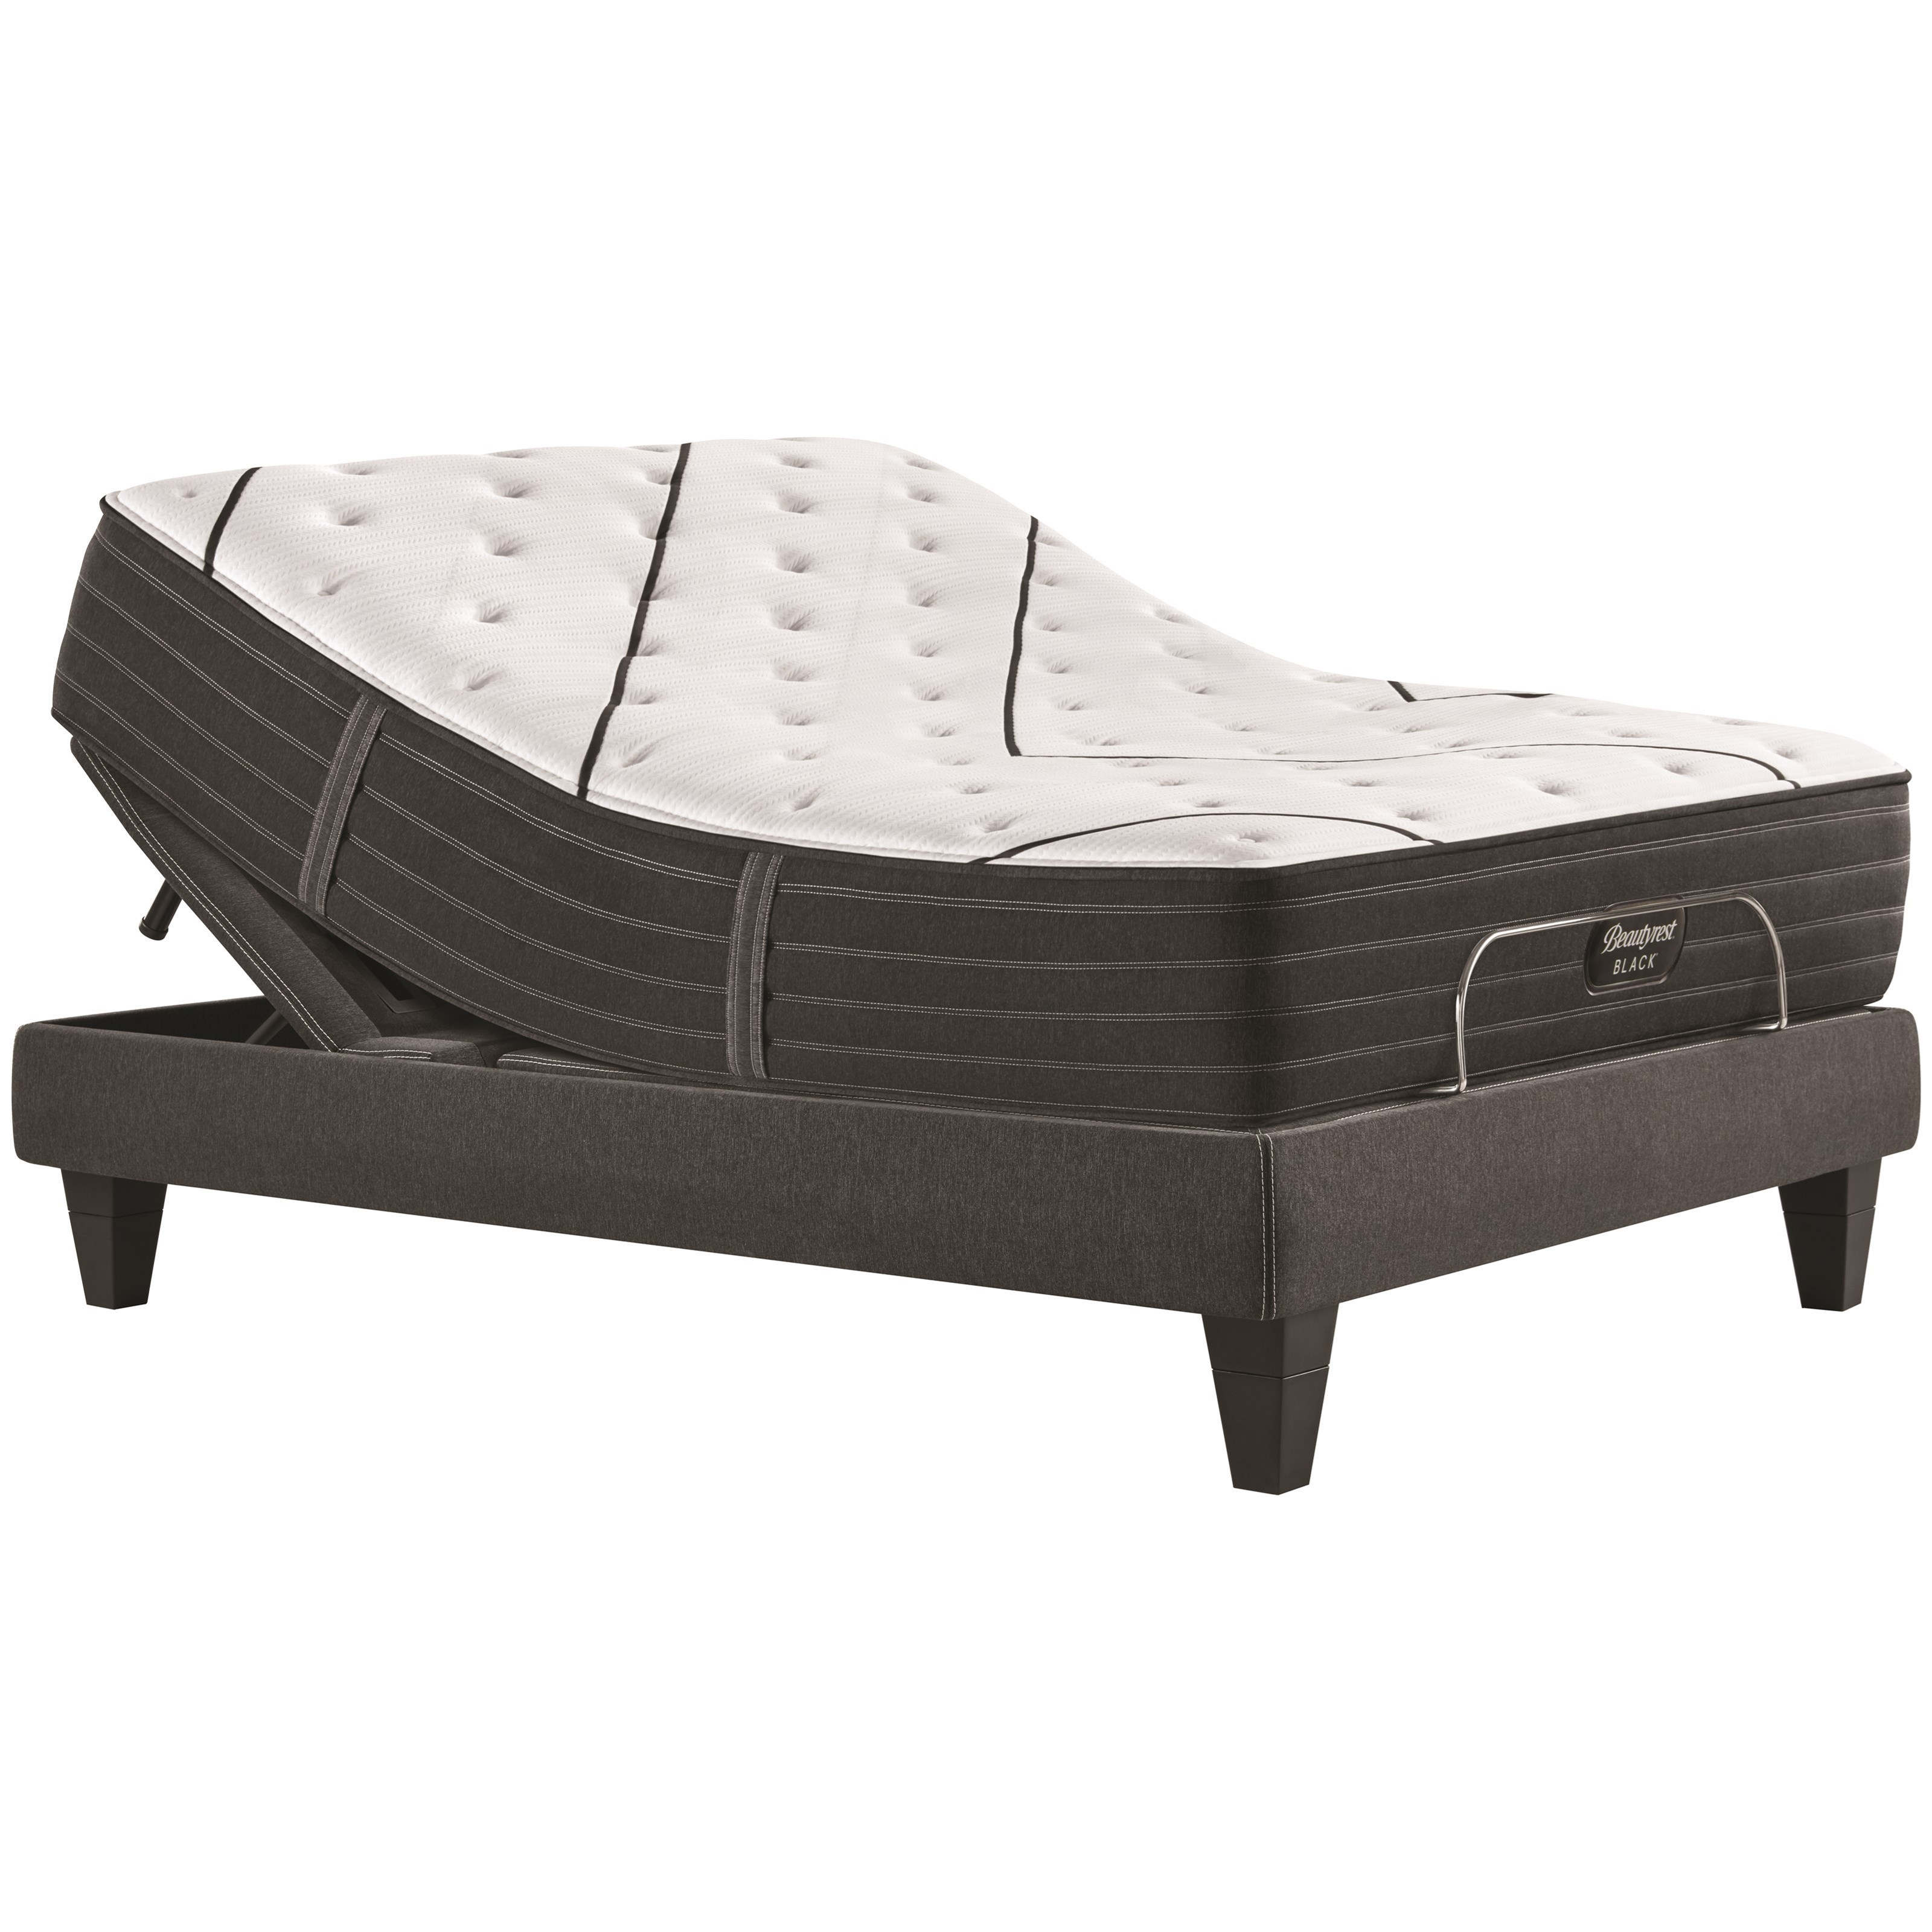 "L-Class Plush Full 14"" Premium Pocketed Coil Adj Set by Beautyrest at A1 Furniture & Mattress"